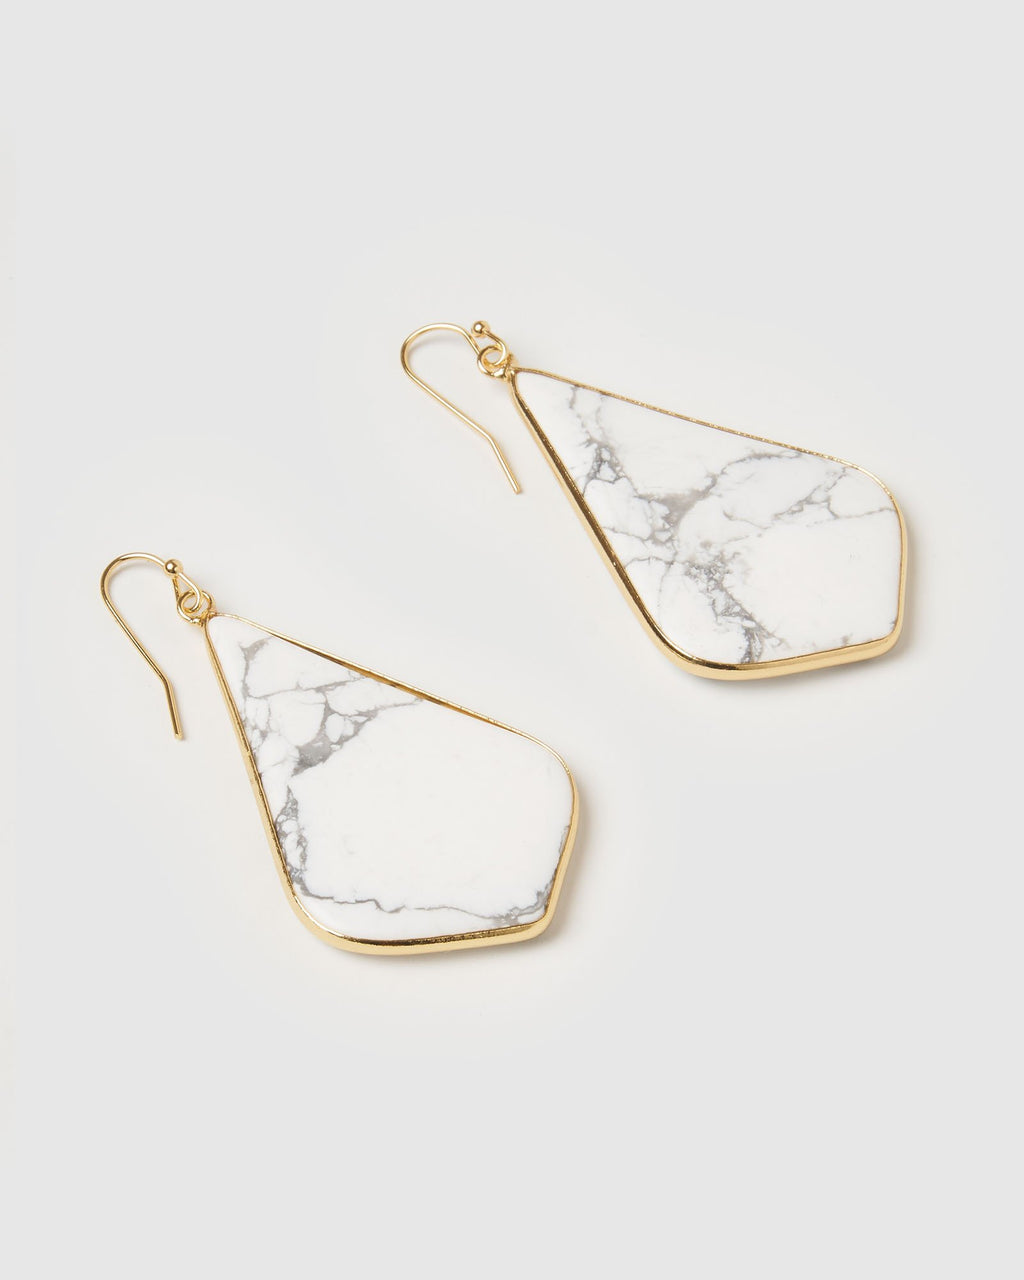 Miz Casa & Co Sandalwood Earring White Marble